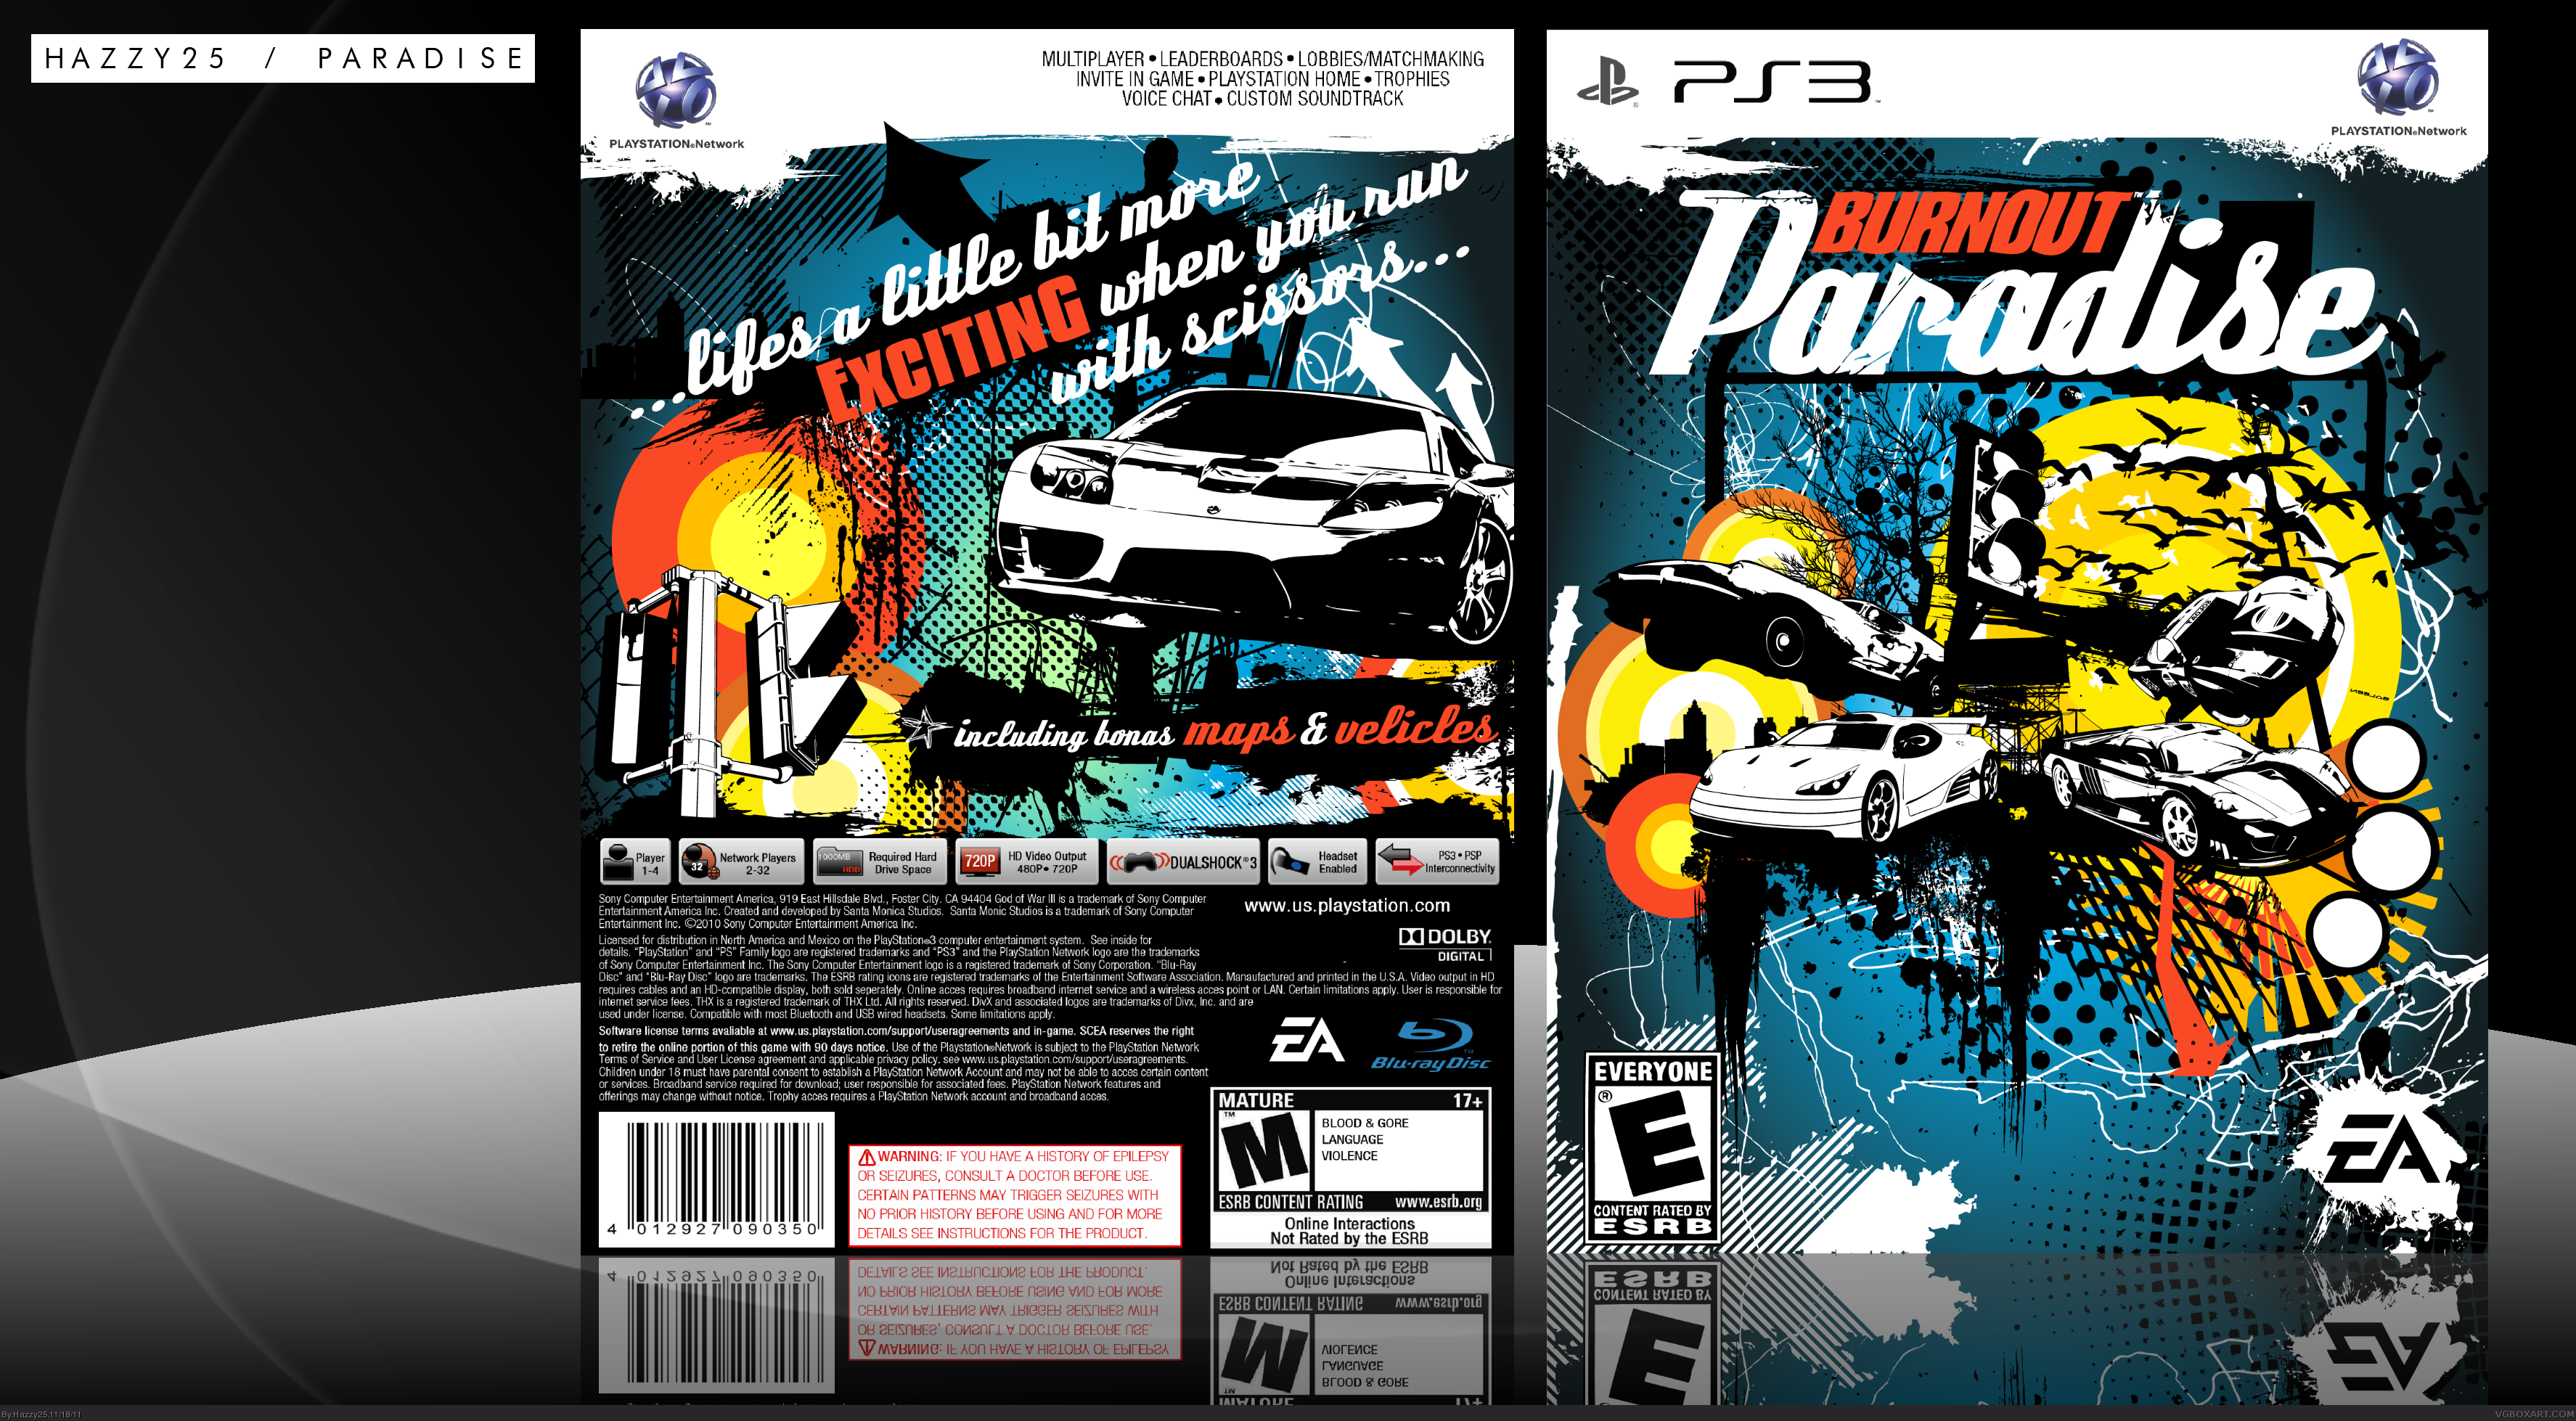 burnout paradise playstation 3 box art cover by hazzy25. Black Bedroom Furniture Sets. Home Design Ideas